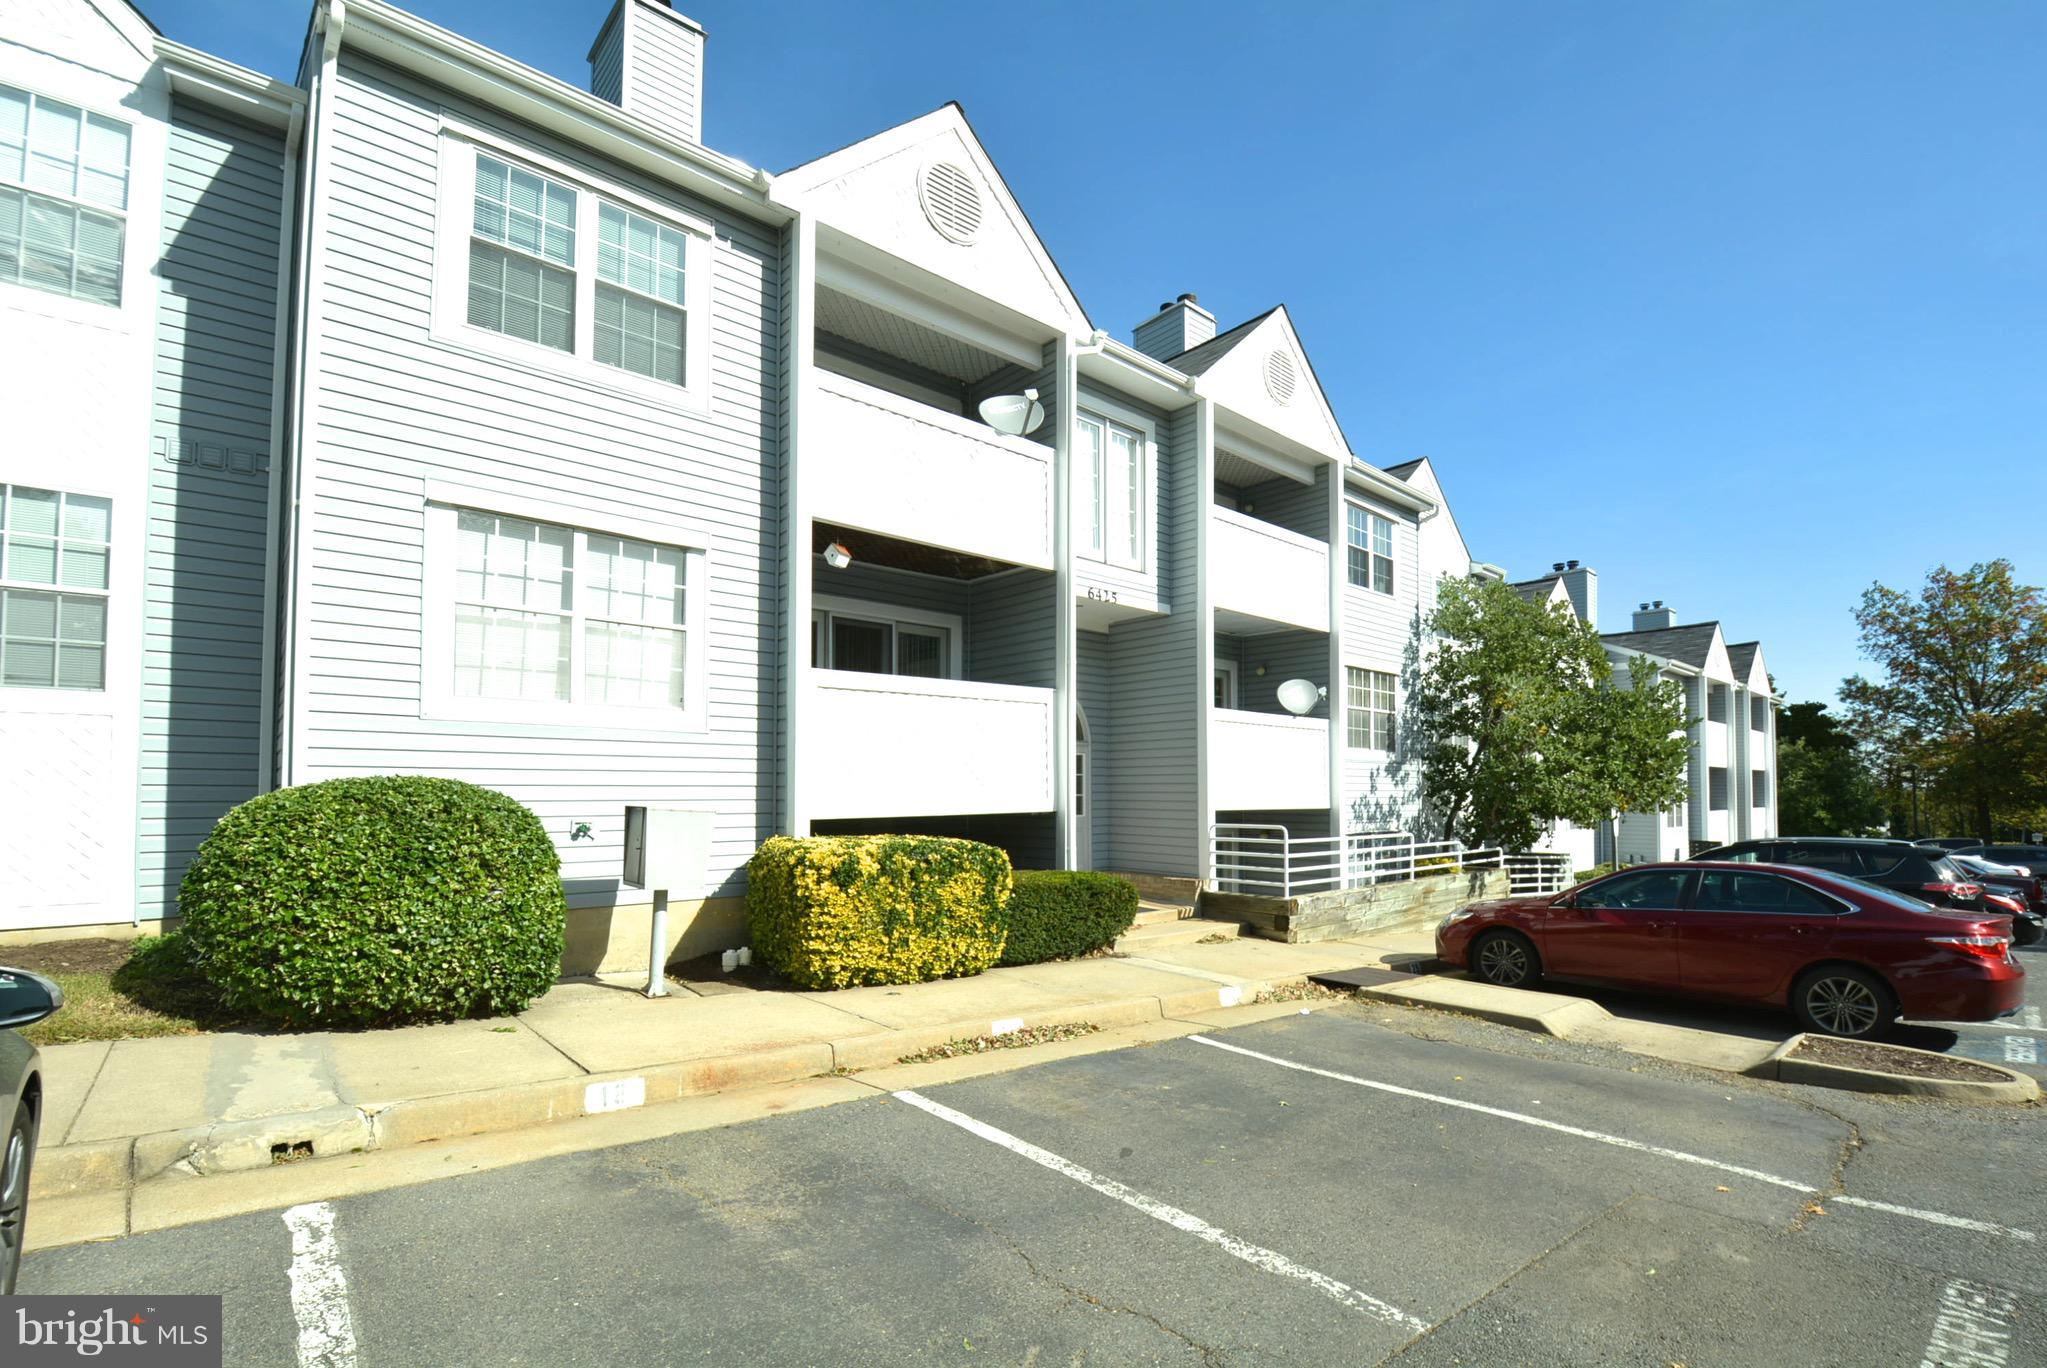 Rare Top Floor!! Ideal property w/FP, balcony, dining room table area, ceiling fans, laundry room in unit w/cabinets, master walkin closet/sep bath & xtra large storage unit in LL.  Assigned 1 car pkg space #8 and extra pkg tag w/ample visitors spots.  Walk to restaurants, shopping, approx 1 mile to metro. Electric $100/month and water in condo fee. VA loan assume @3.25% OH SAT NOV 3rd 12-1PM